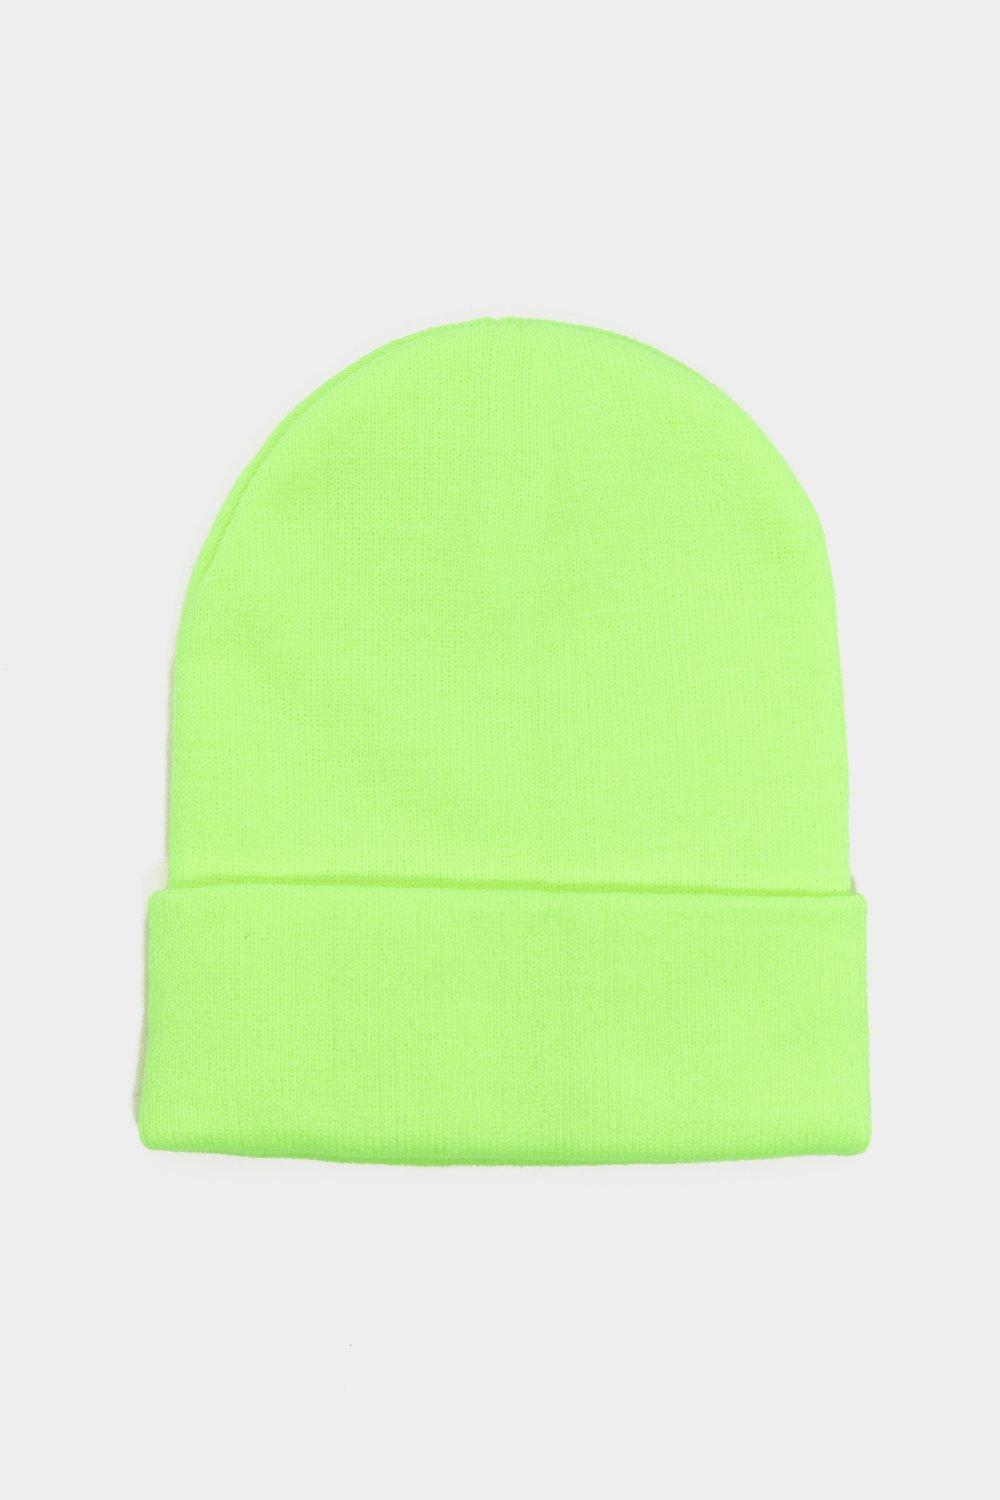 0845b1d64eb63 Womens Green Rave It Up Neon Beanie.